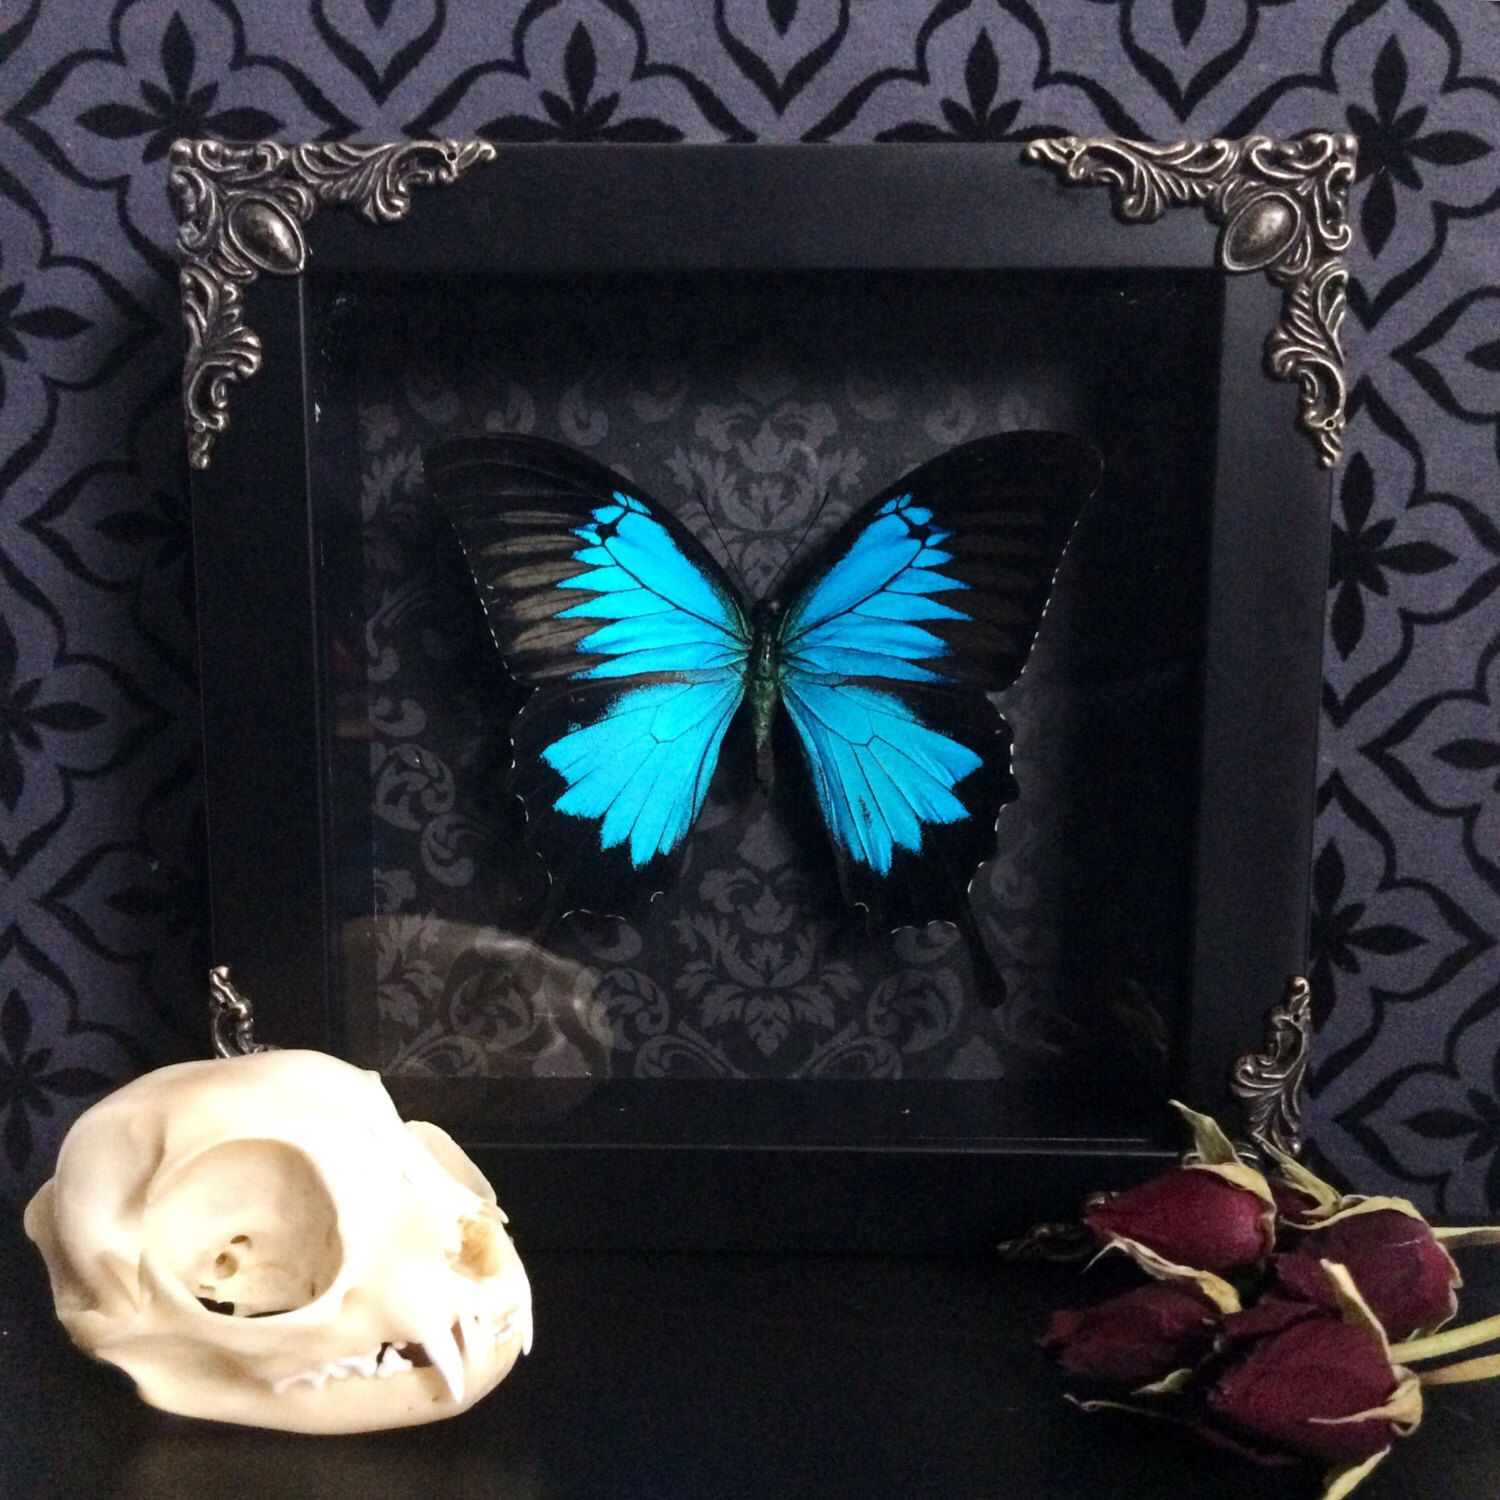 Modern Gothic Decor victorian blue swallowtail butterfly shadow box, framed butterfly